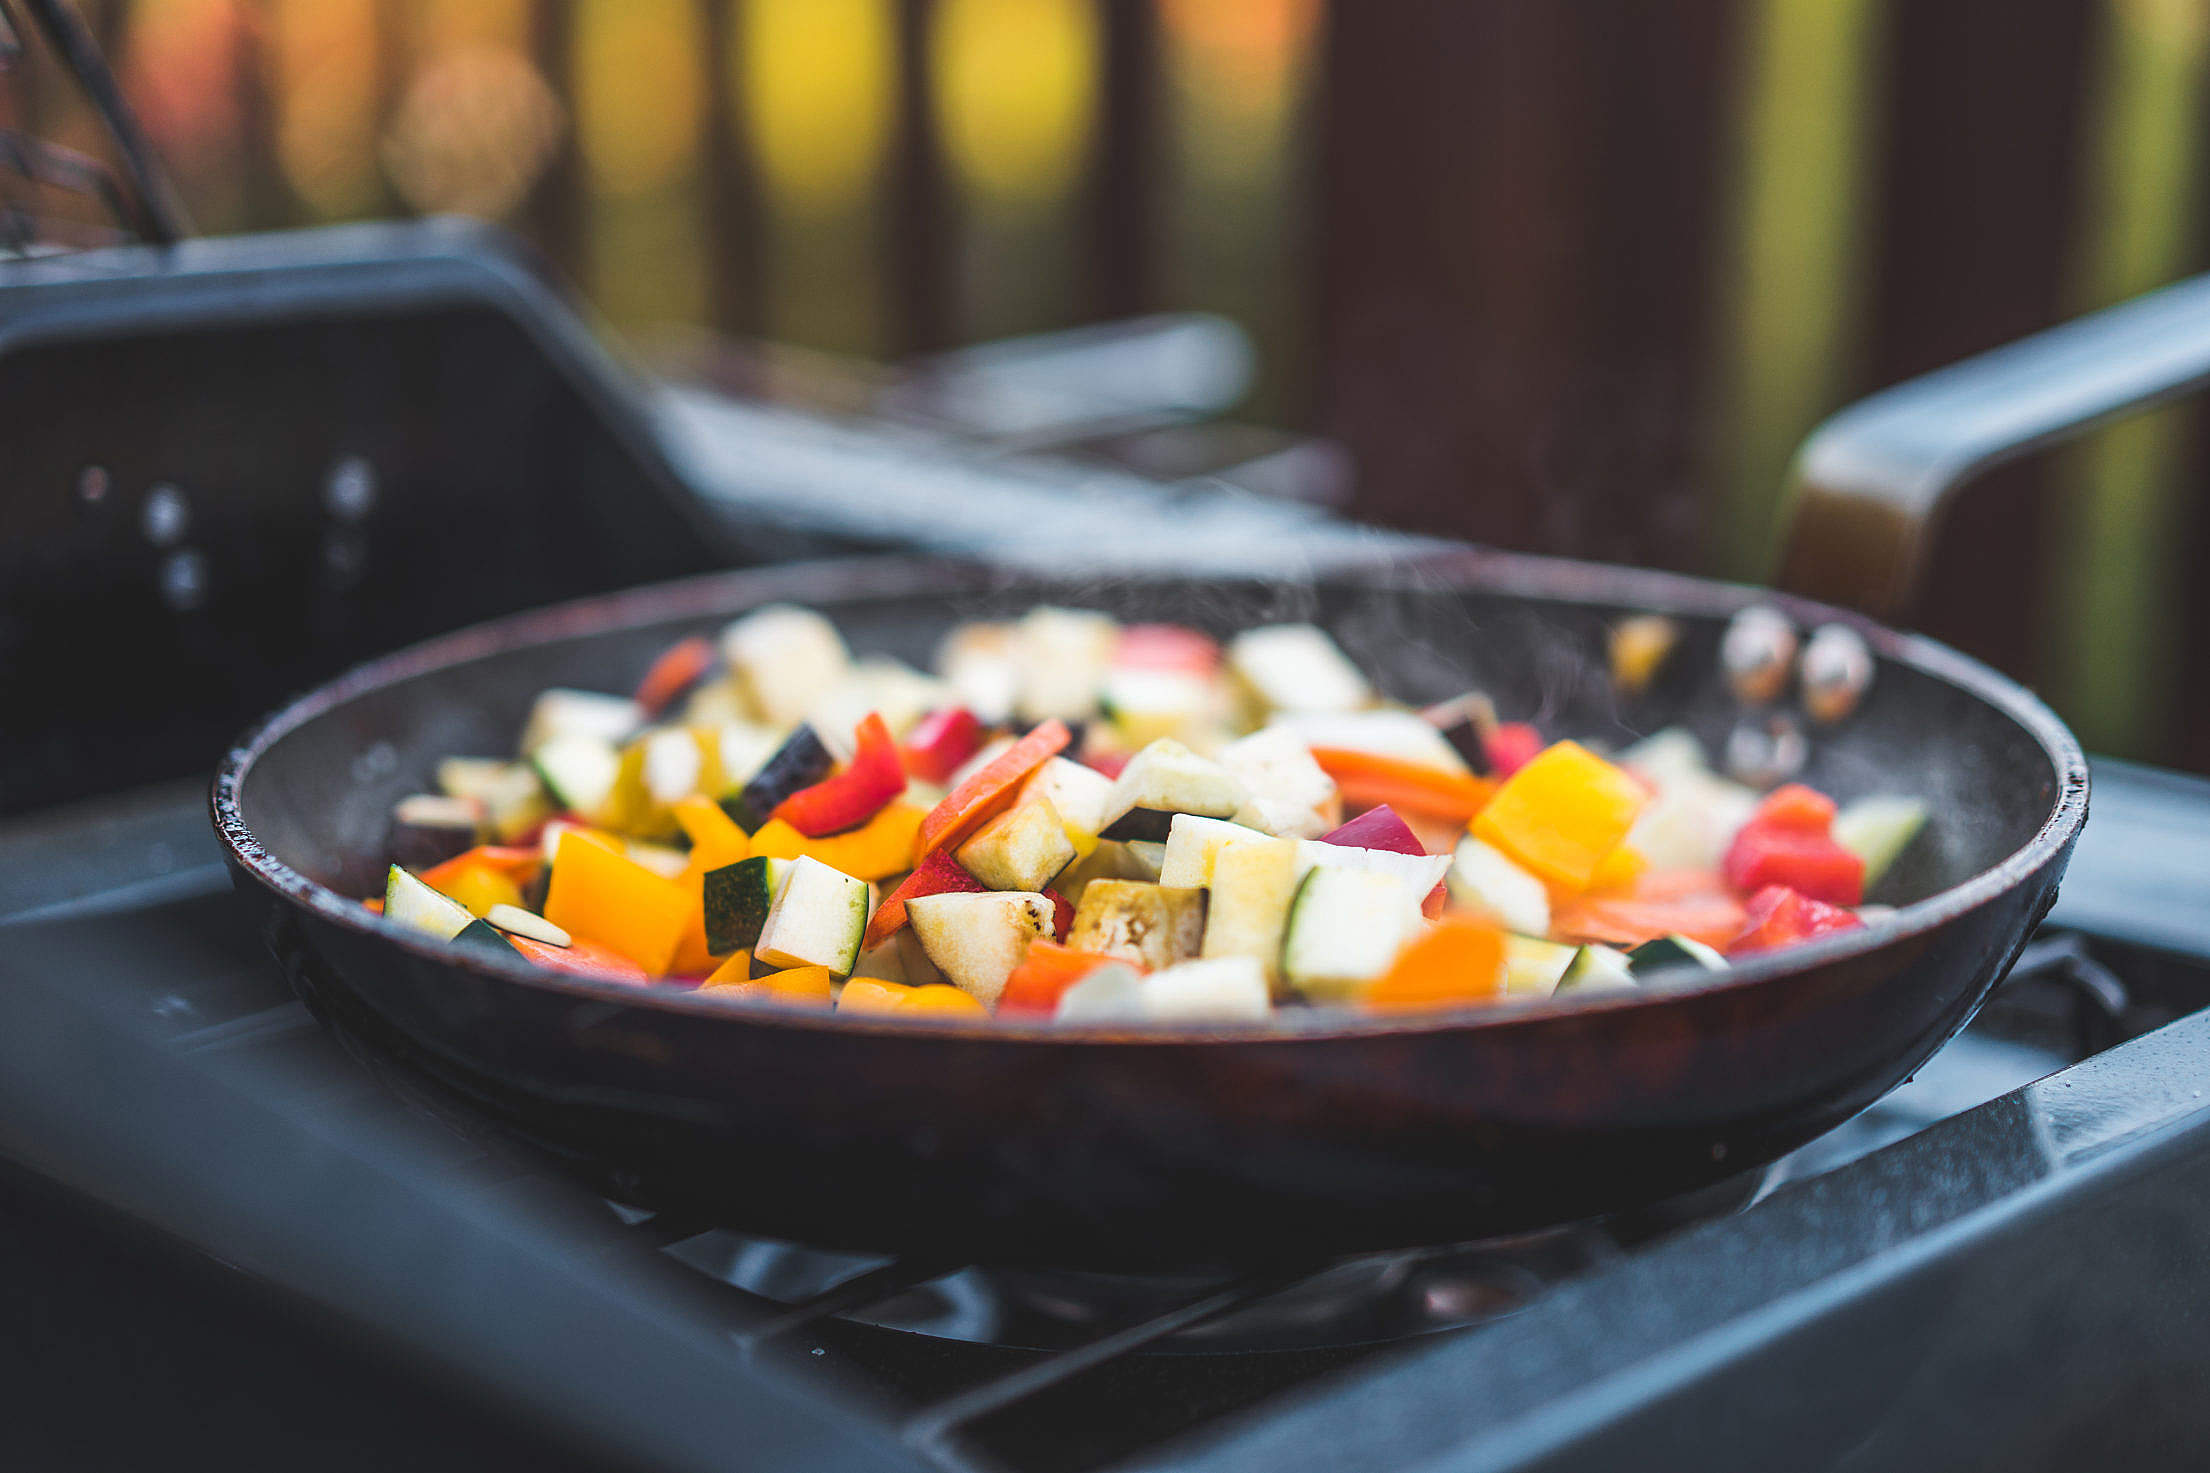 Frying Vegetables on a Pan Free Stock Photo